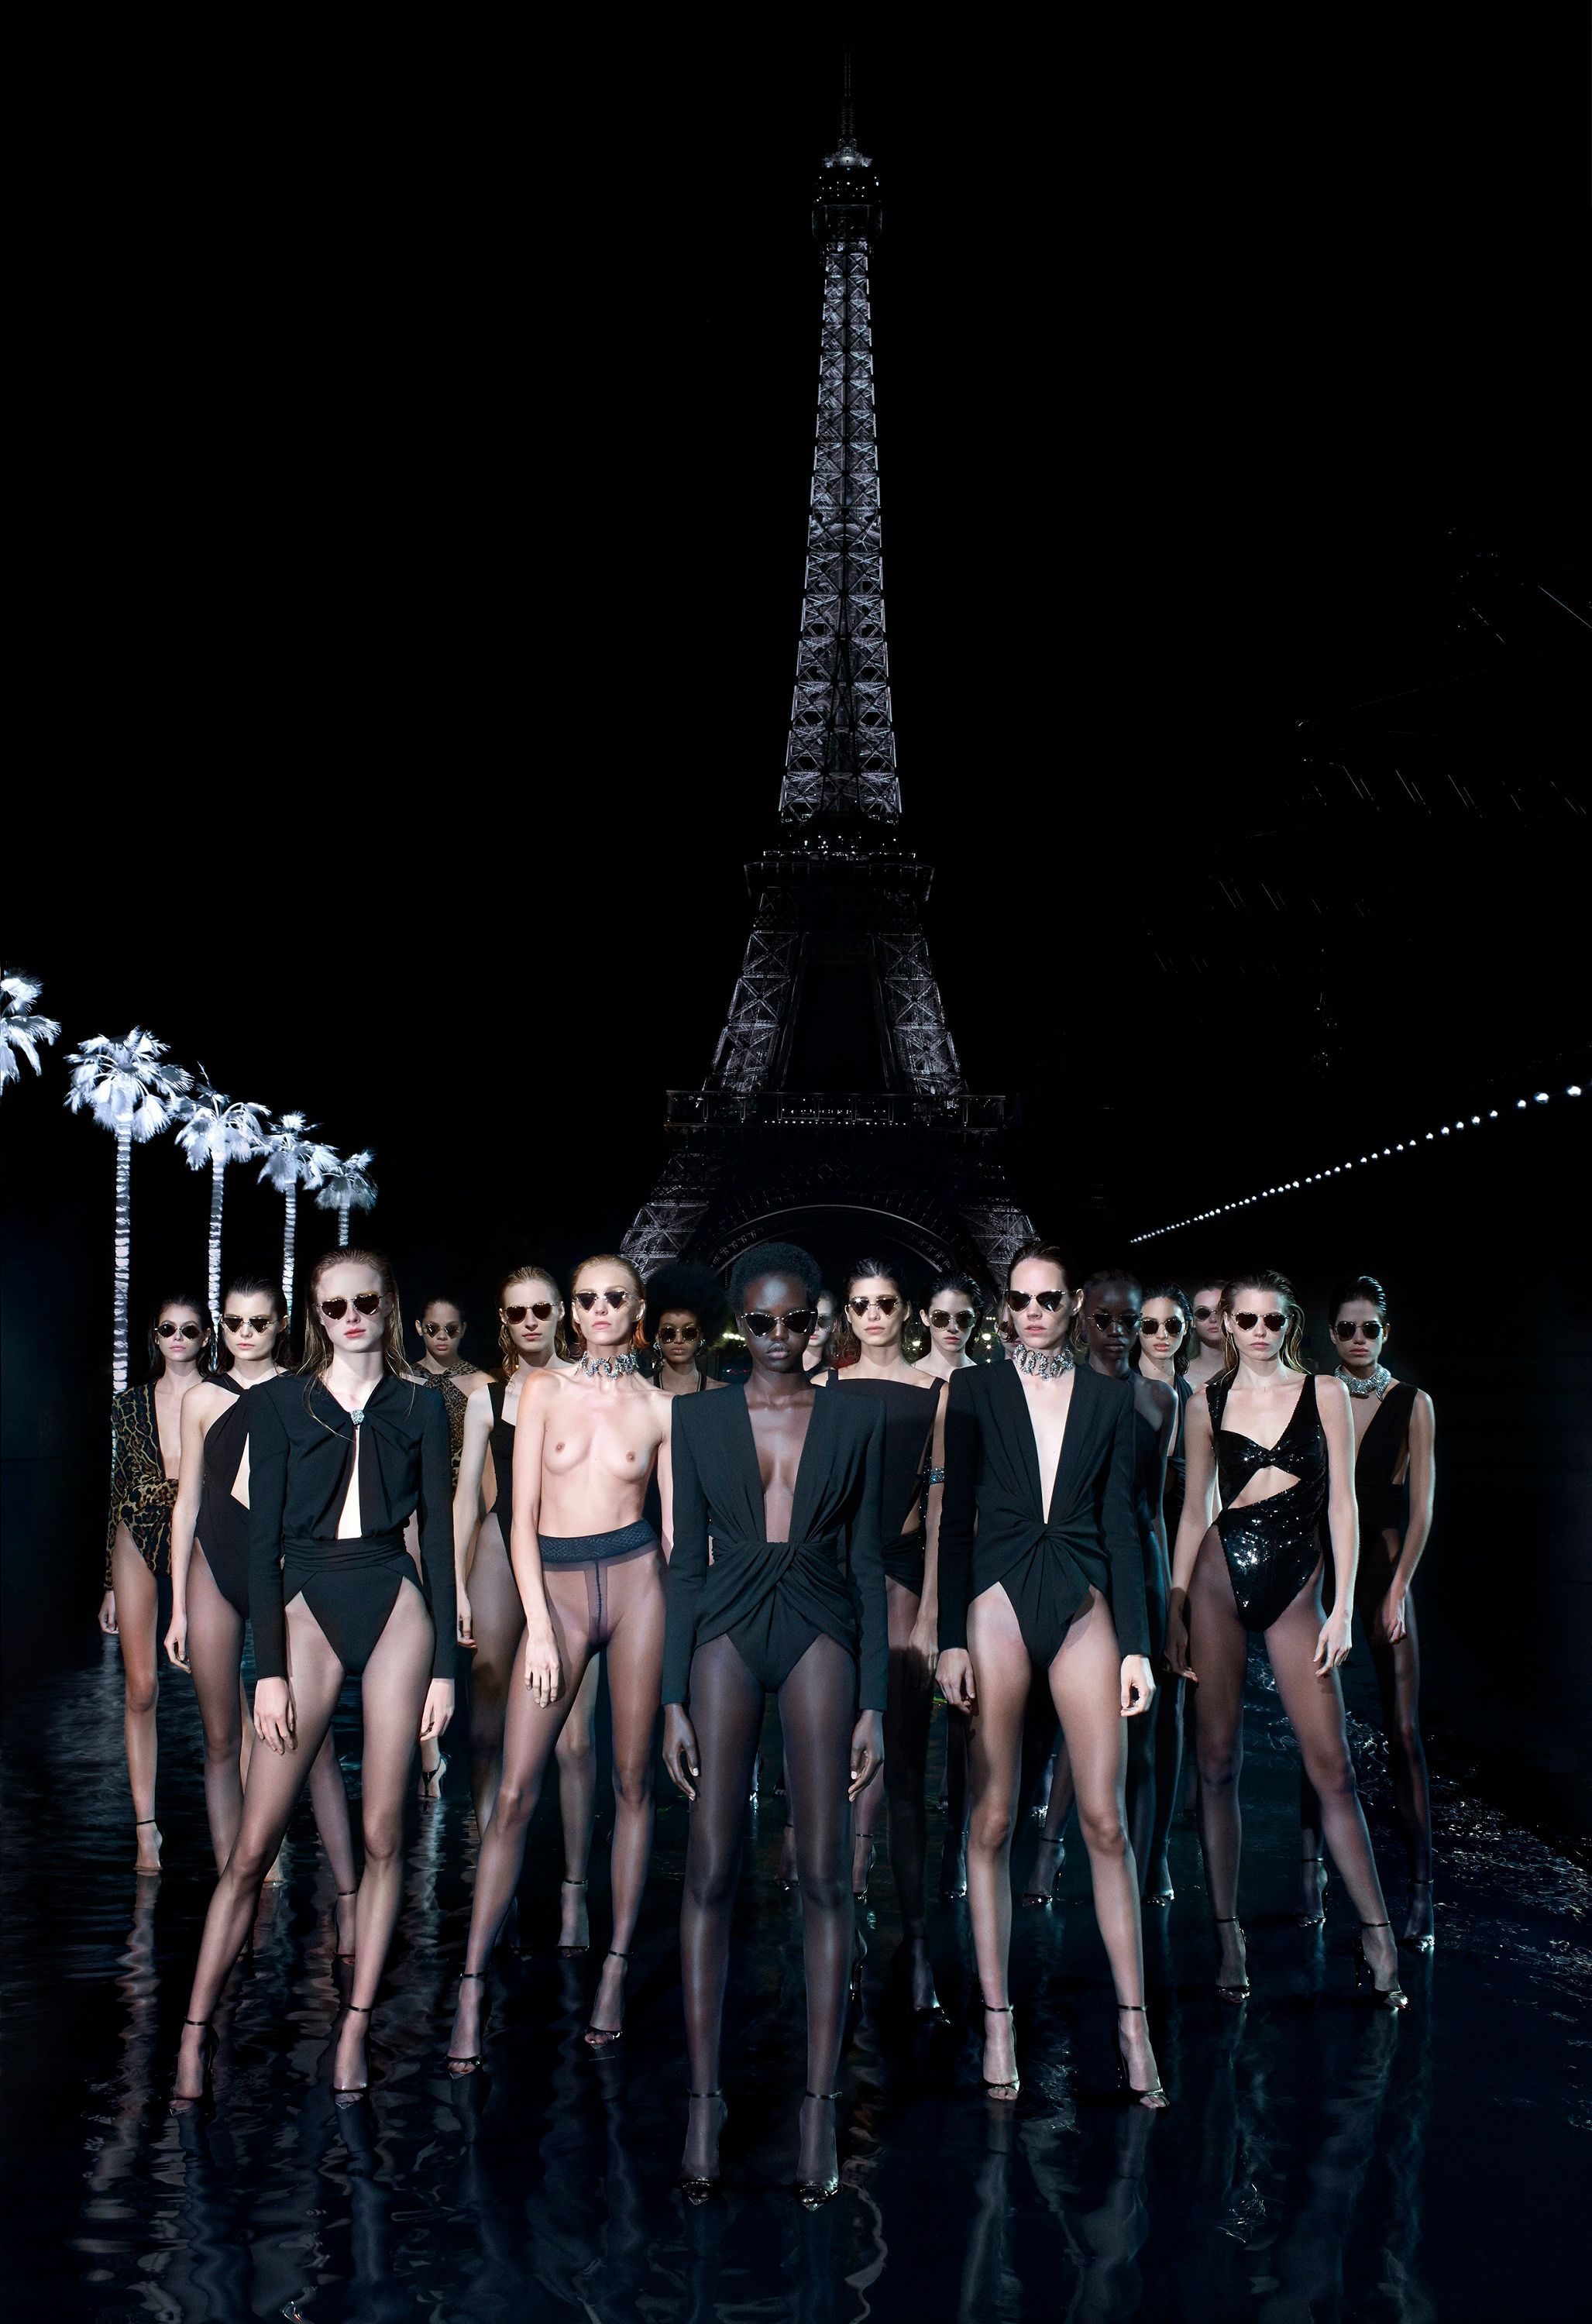 SAINT LAURENT_SELF02_VANESSA BEECROFT_HR_02